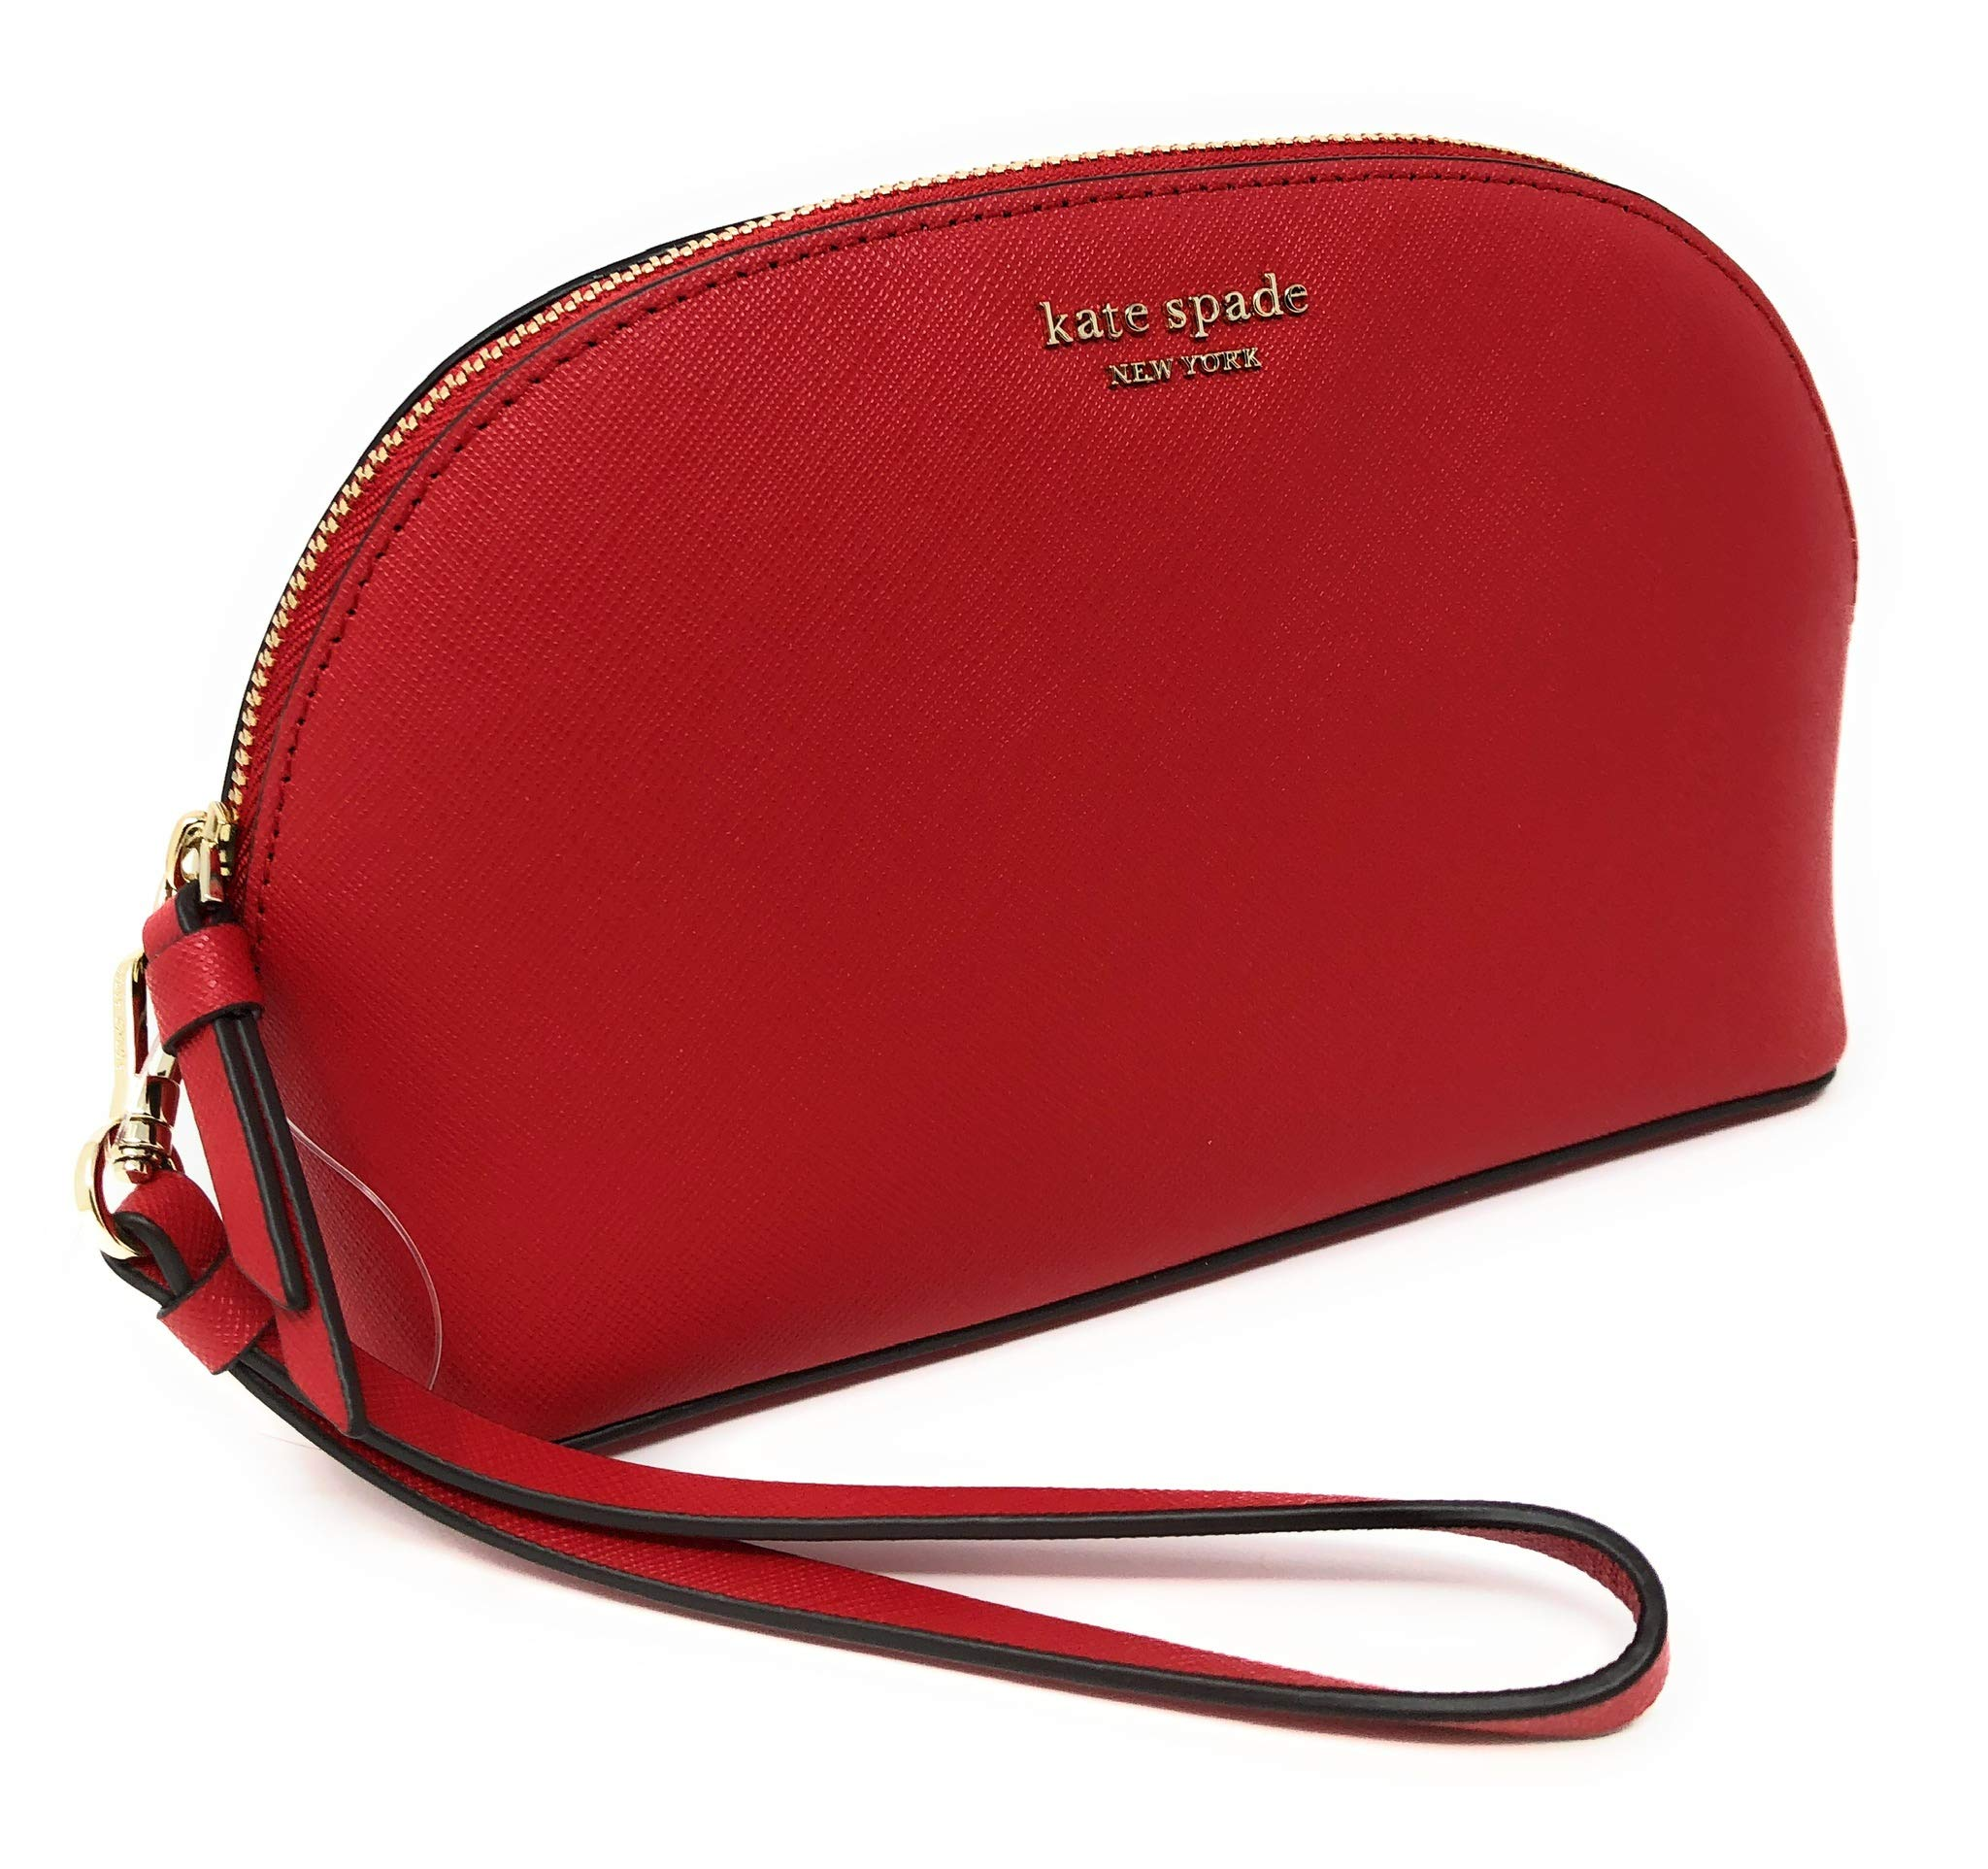 Kate Sapde New York Medium Dome Cosmetic Make-Up Leather Clutch Bag Wristlet Red by Kate Spade New York